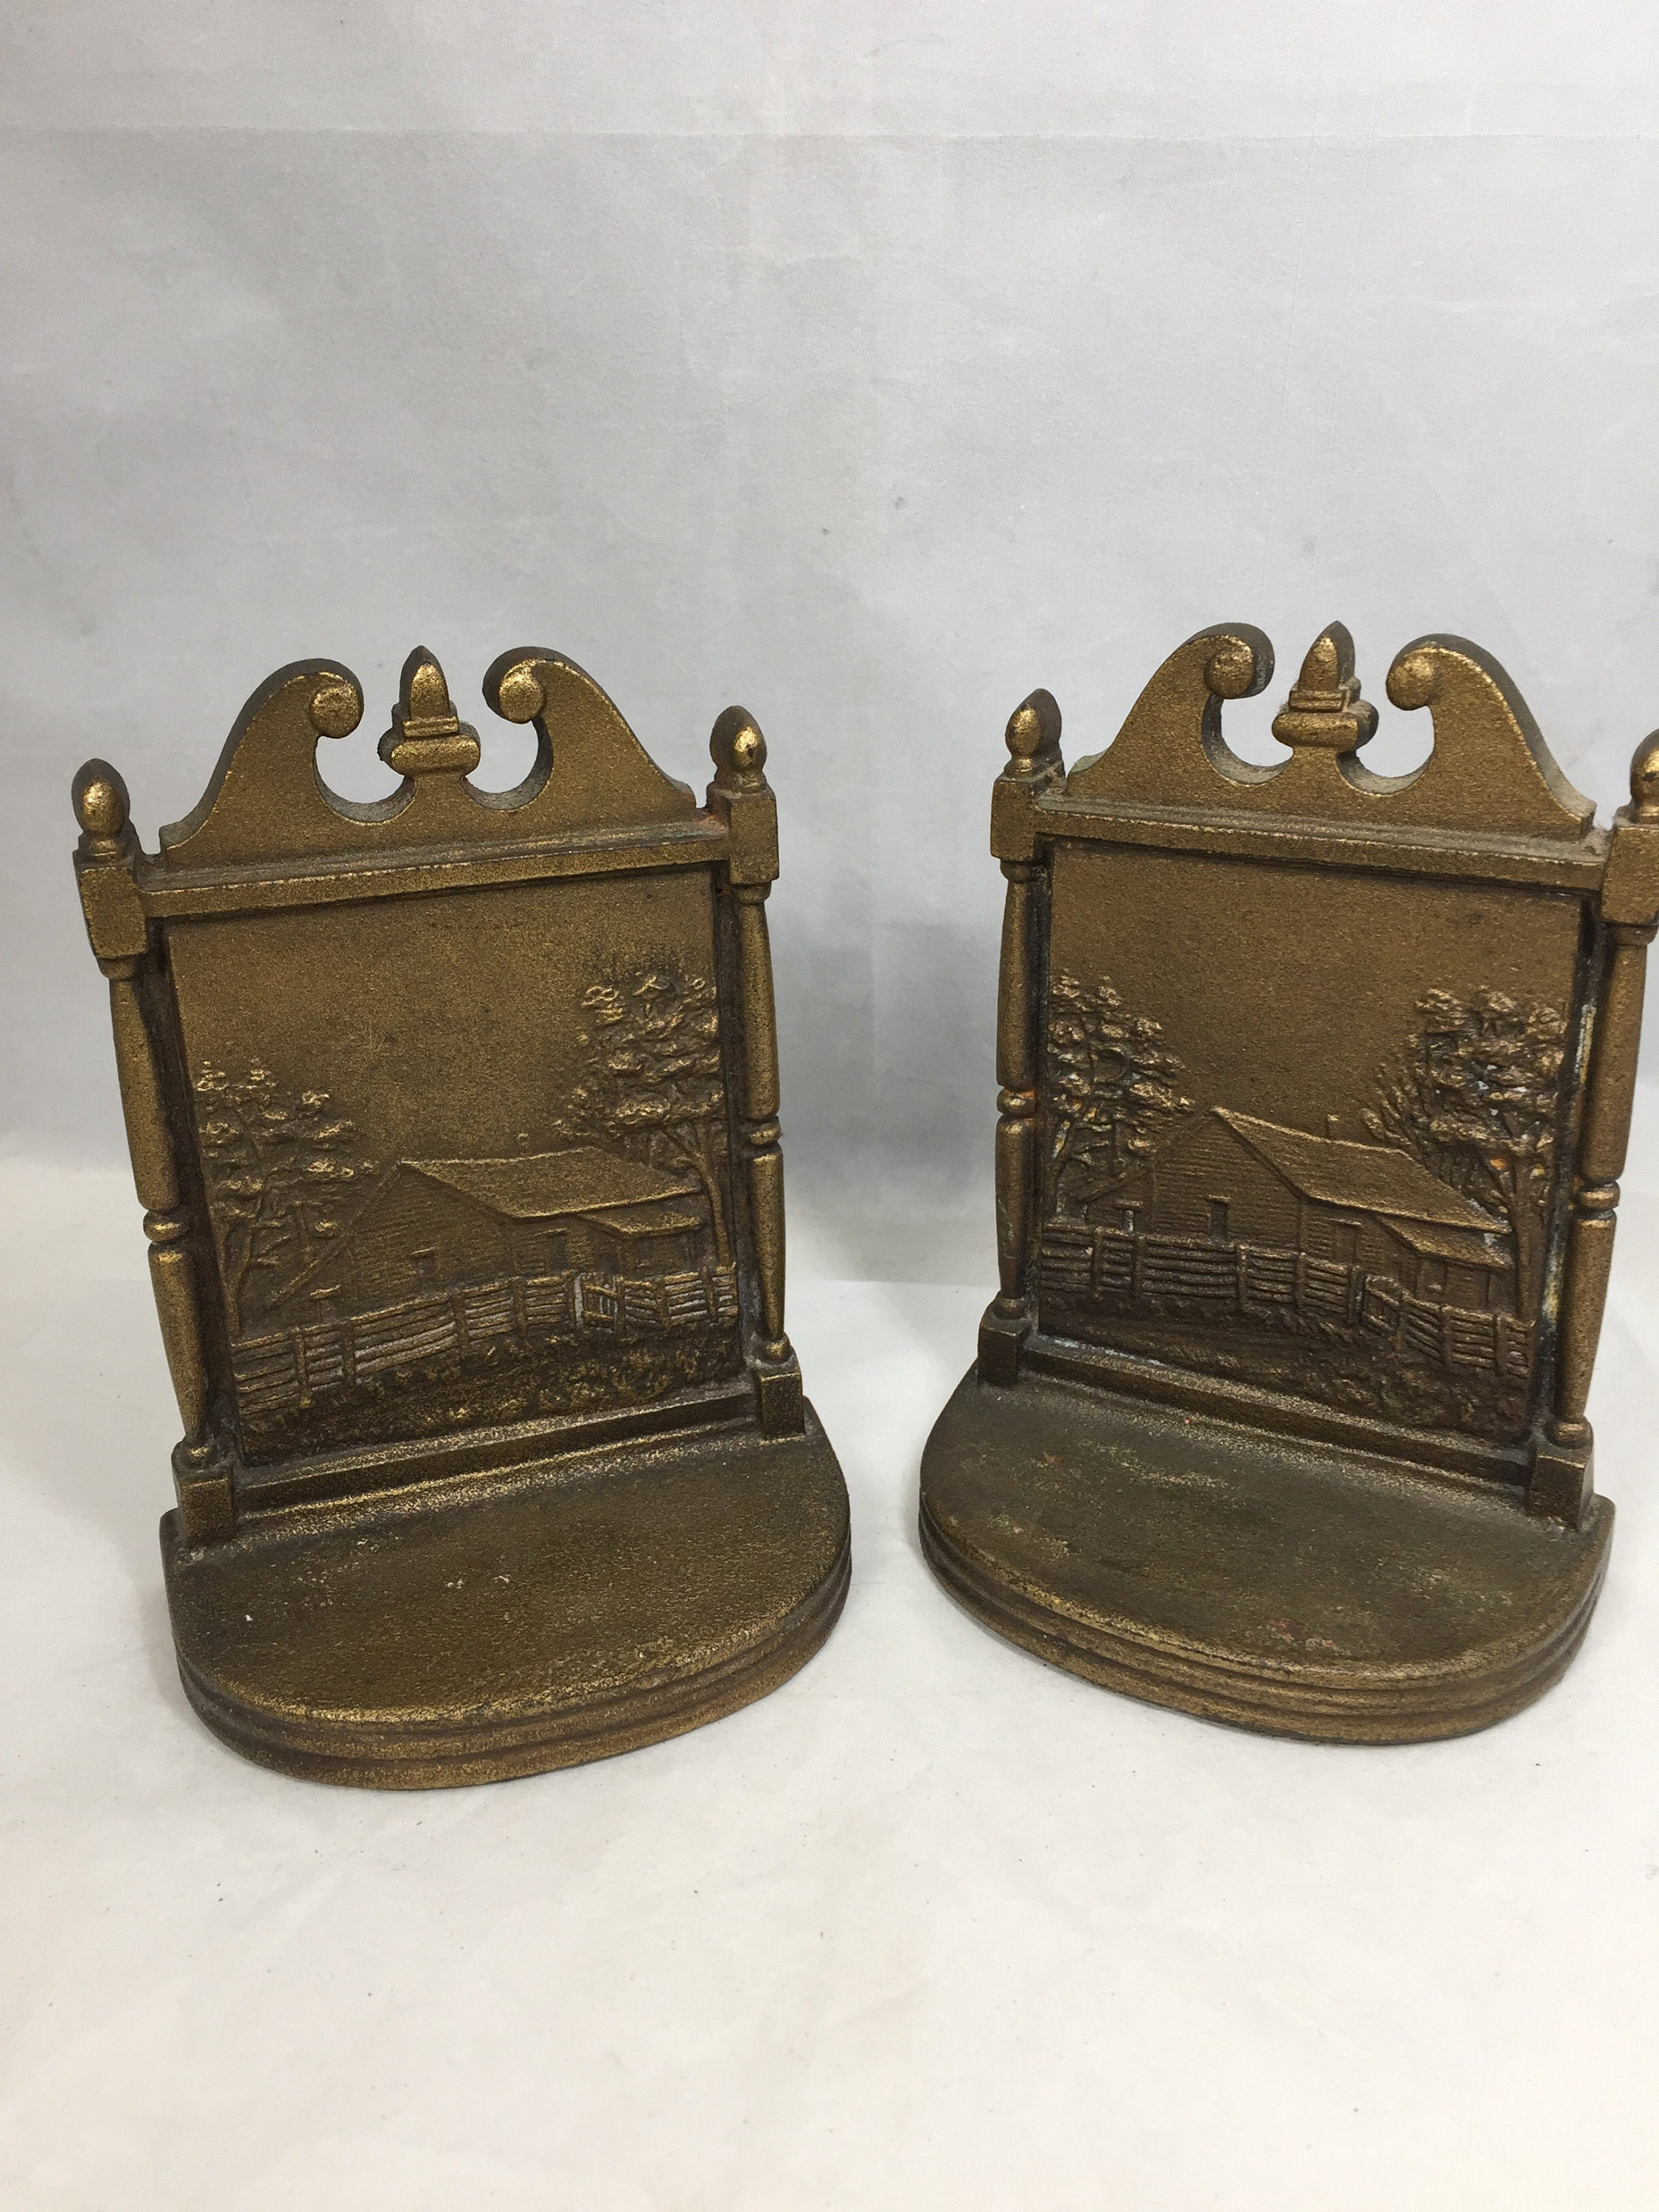 Image 3 of Antique Bradley and Hubbard Bookends